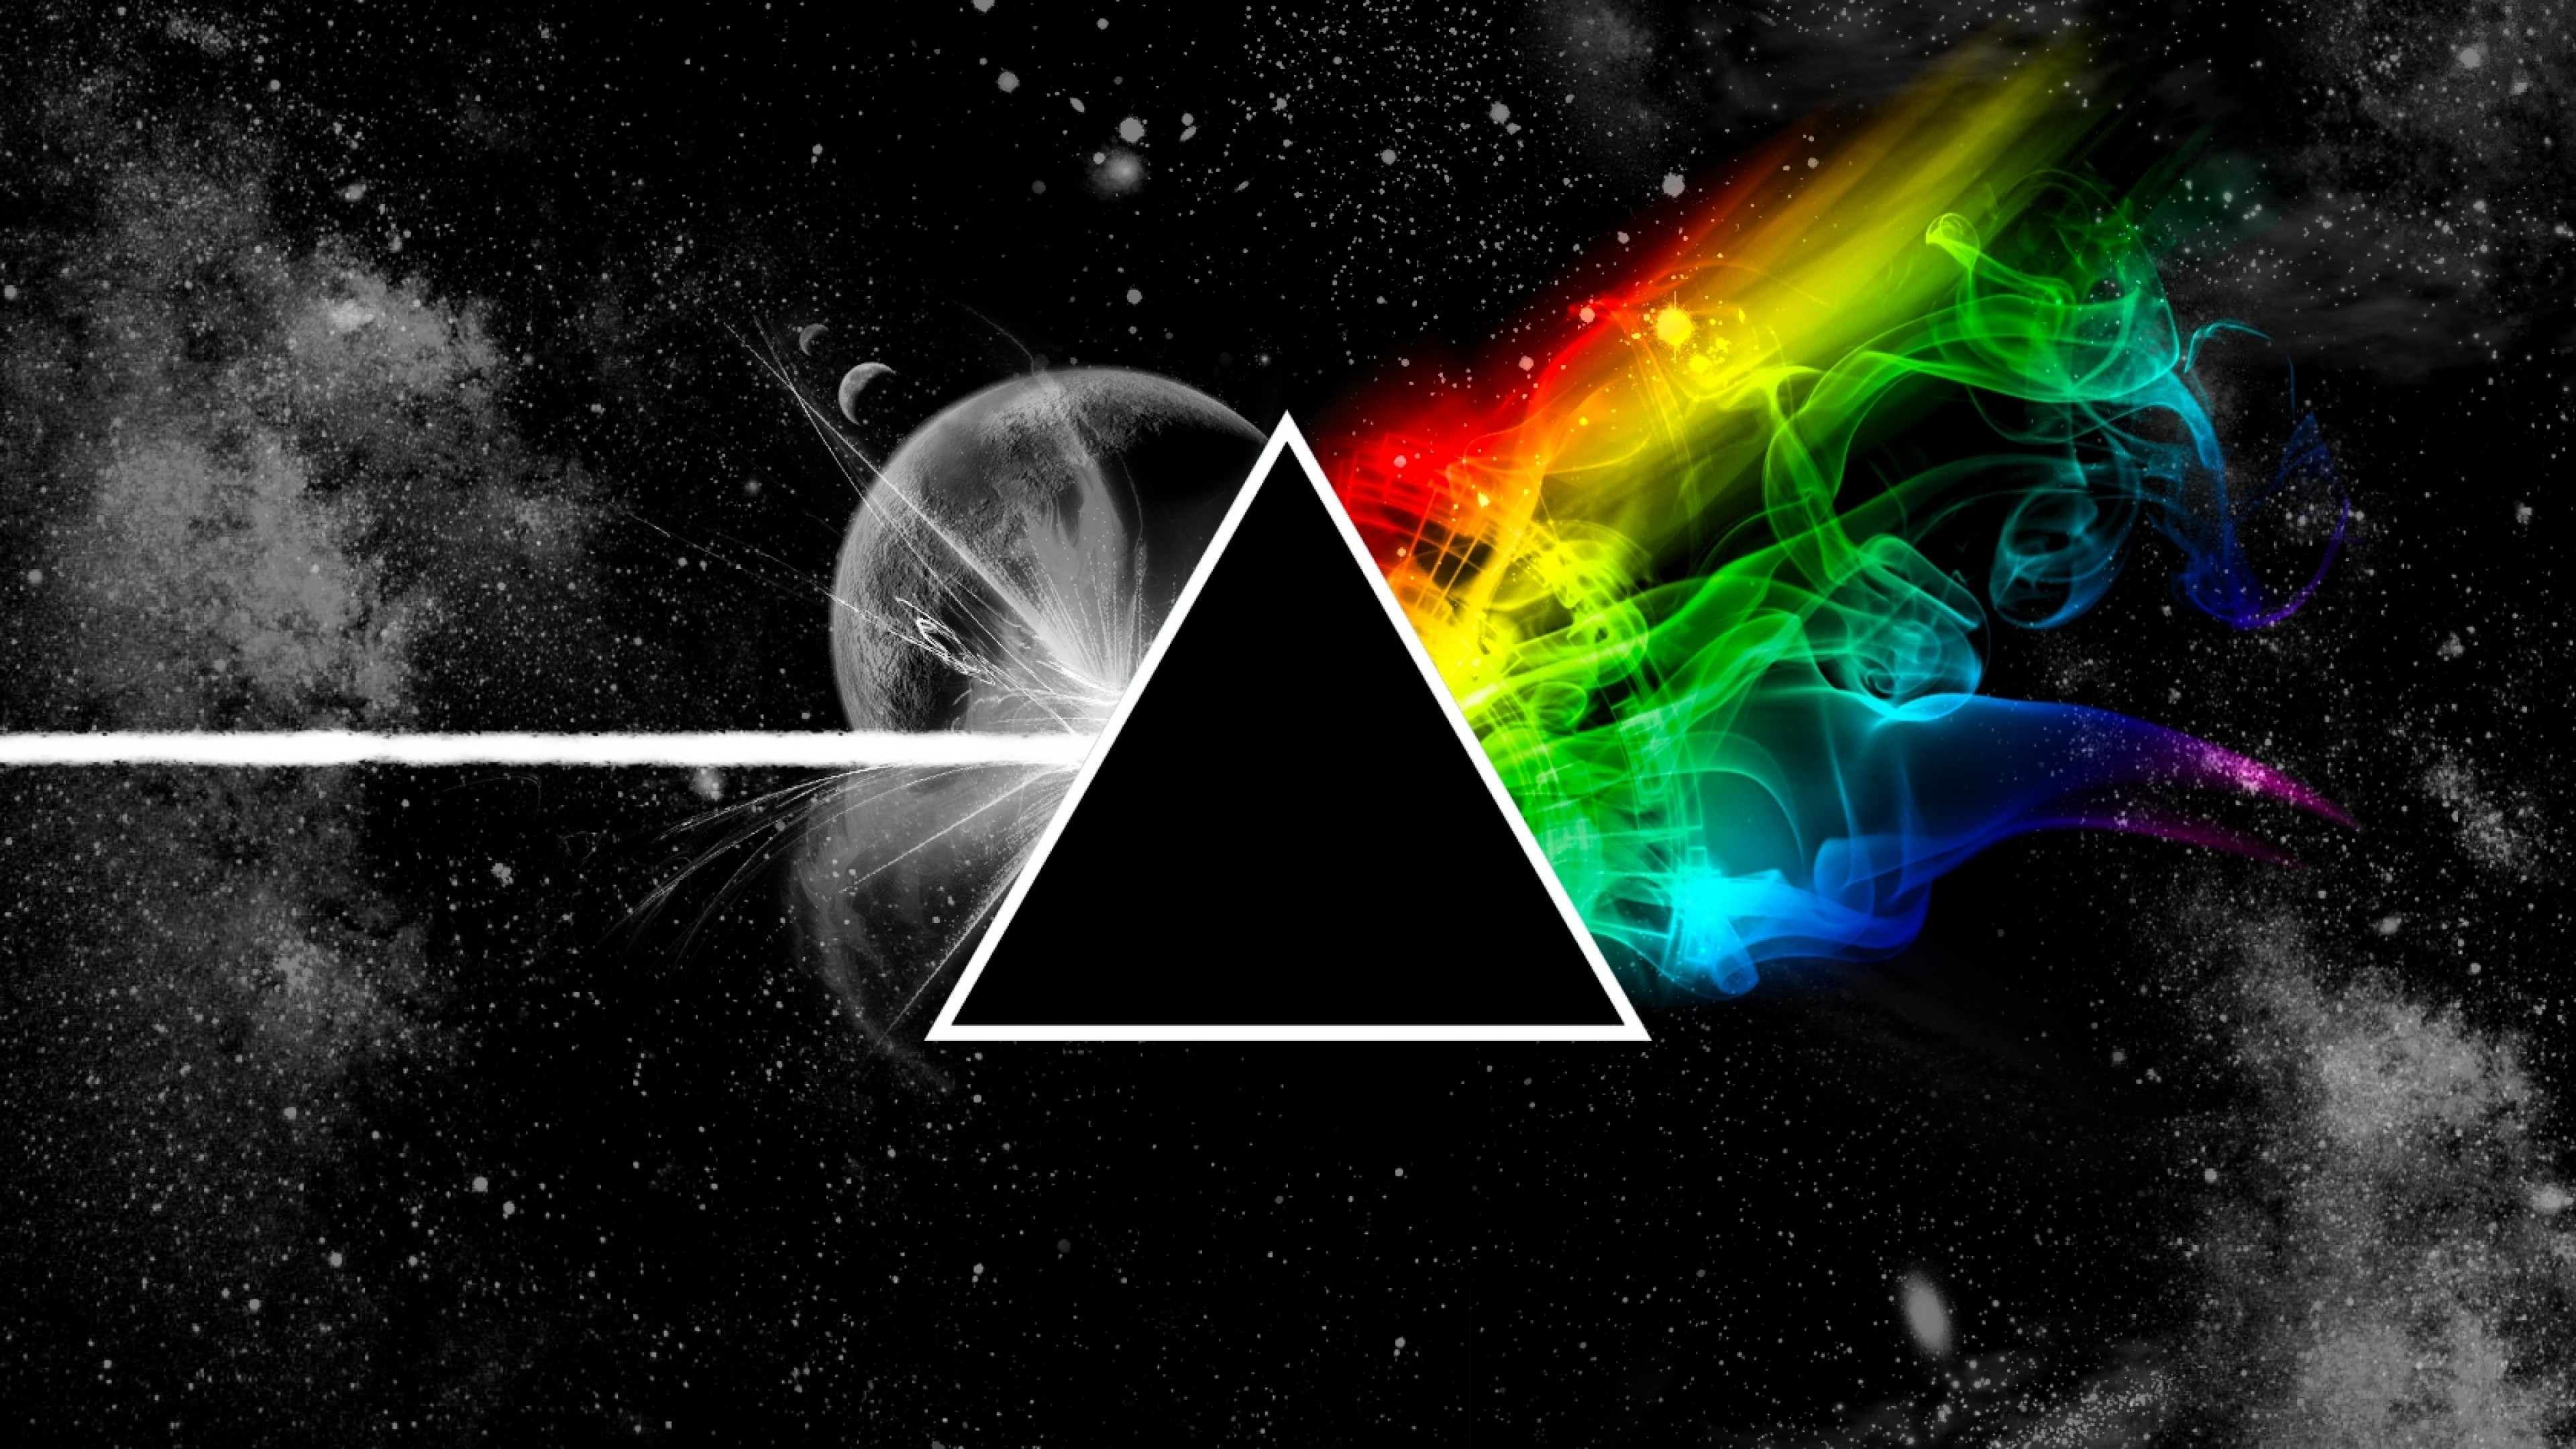 Wallpaper pink floyd, triangle, space, planet, colors